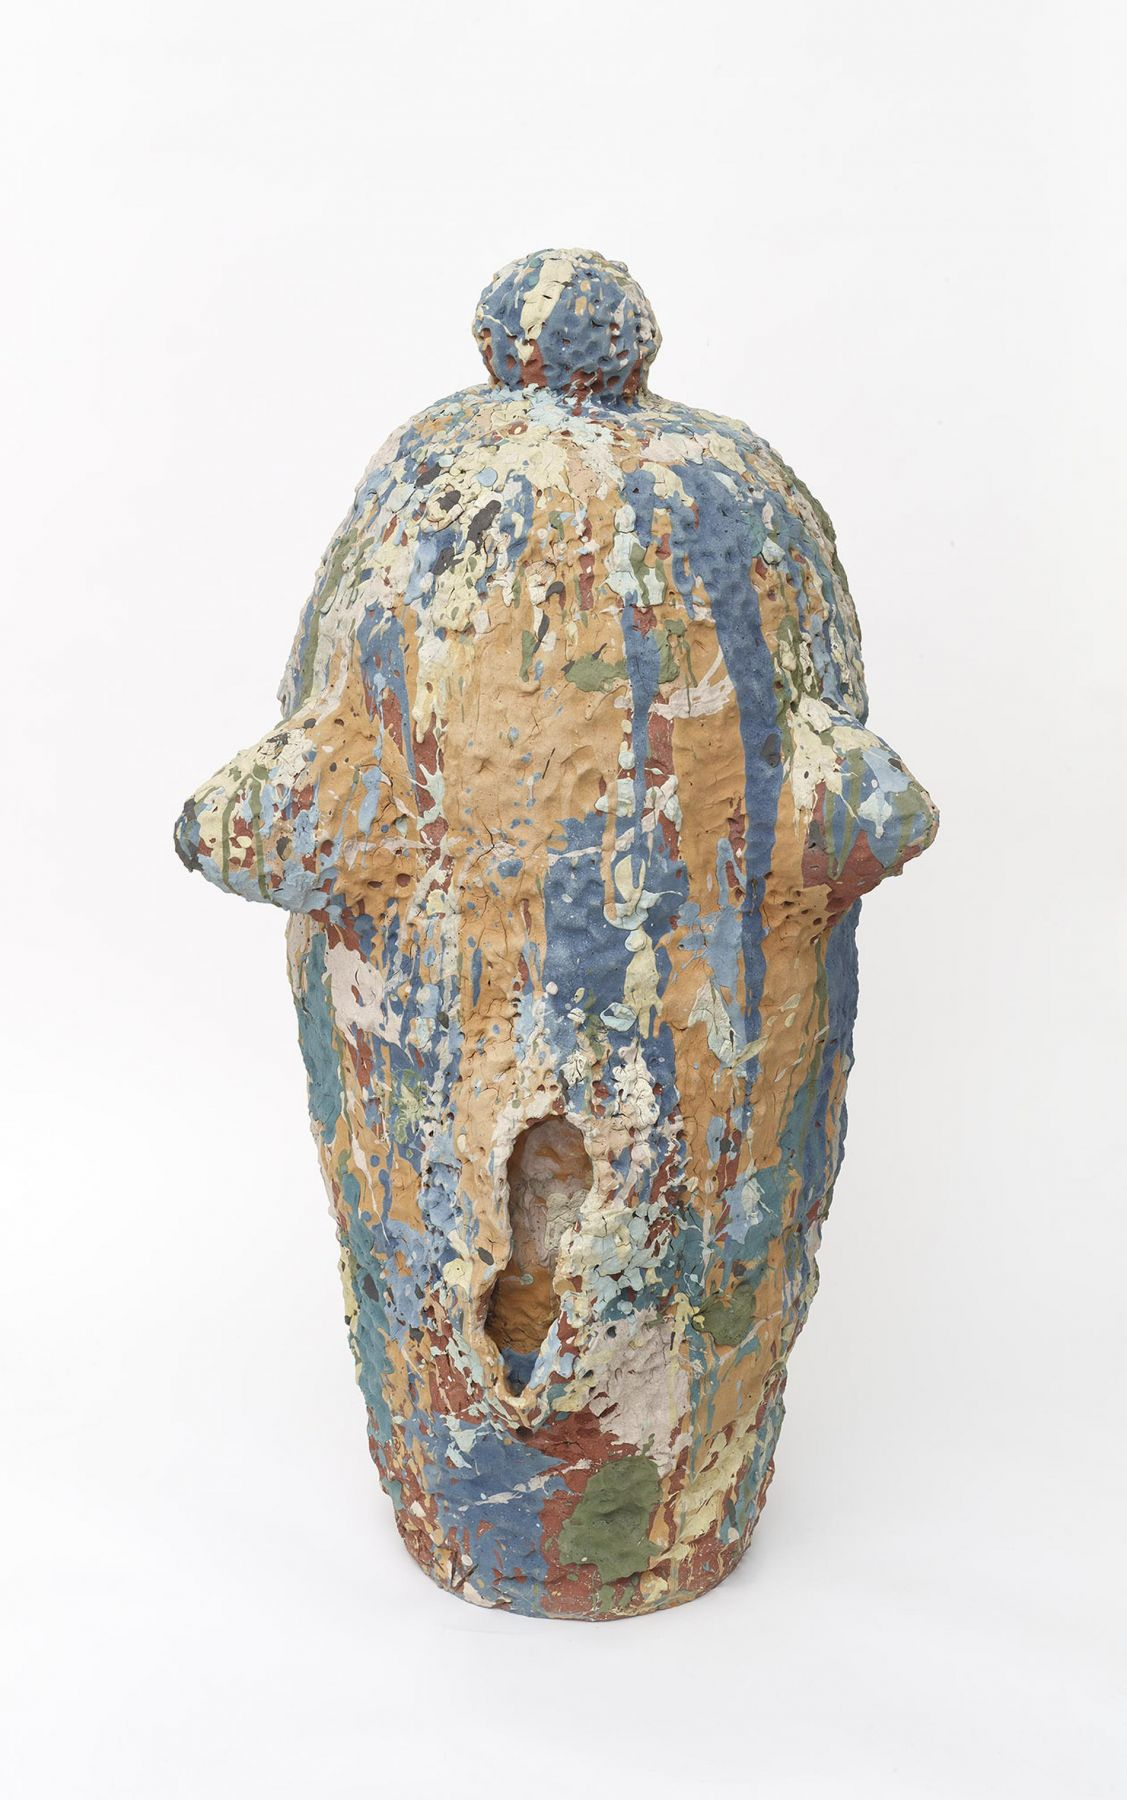 , Chubby Bunny, c.1987, Stoneware and colored slips, 48 x 24 1/4 x 24 in.